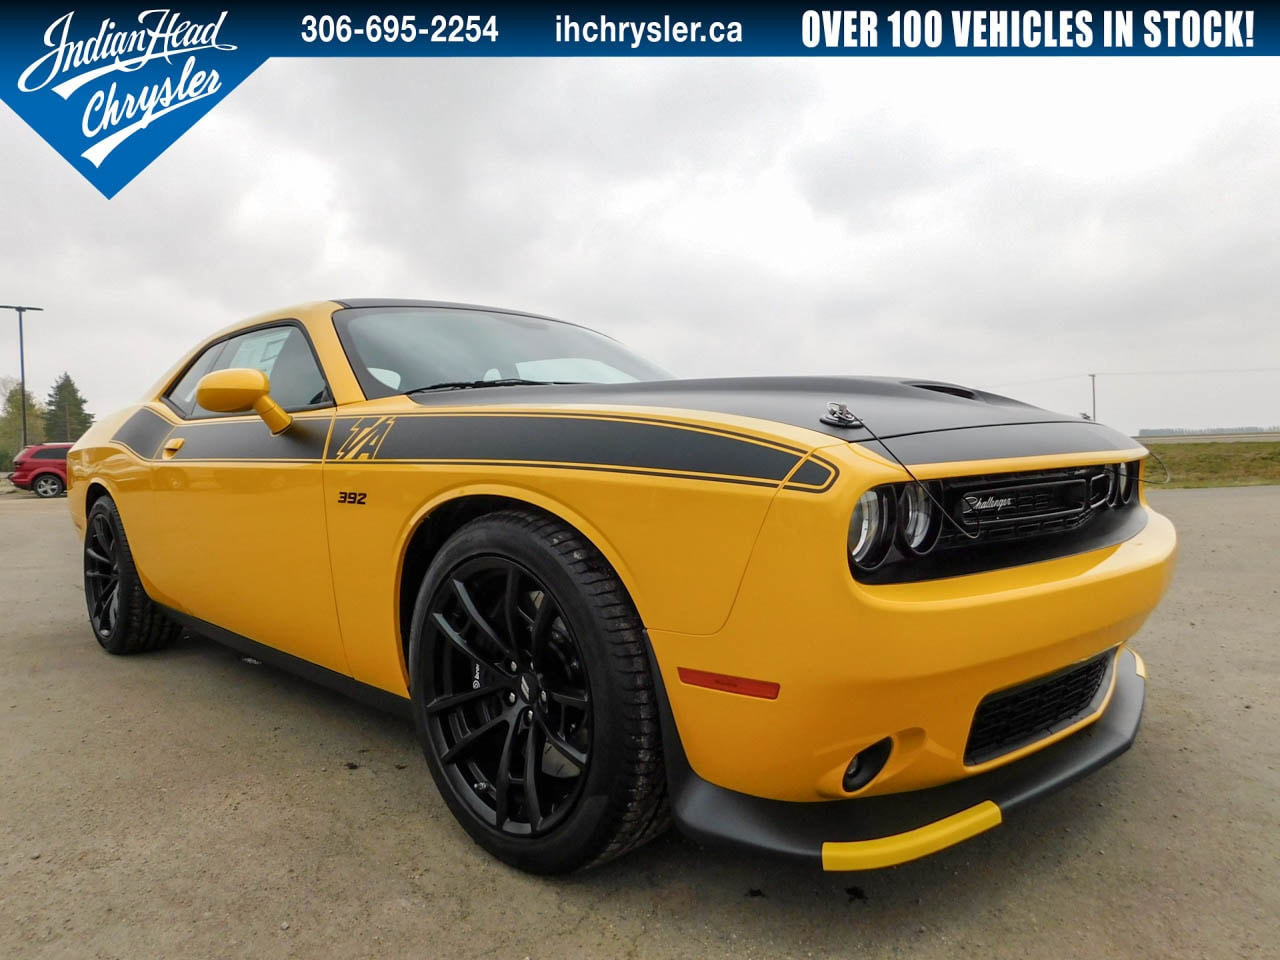 2018 Dodge Challenger T/A 392 | Leather | Nav | Sunroof Coupe